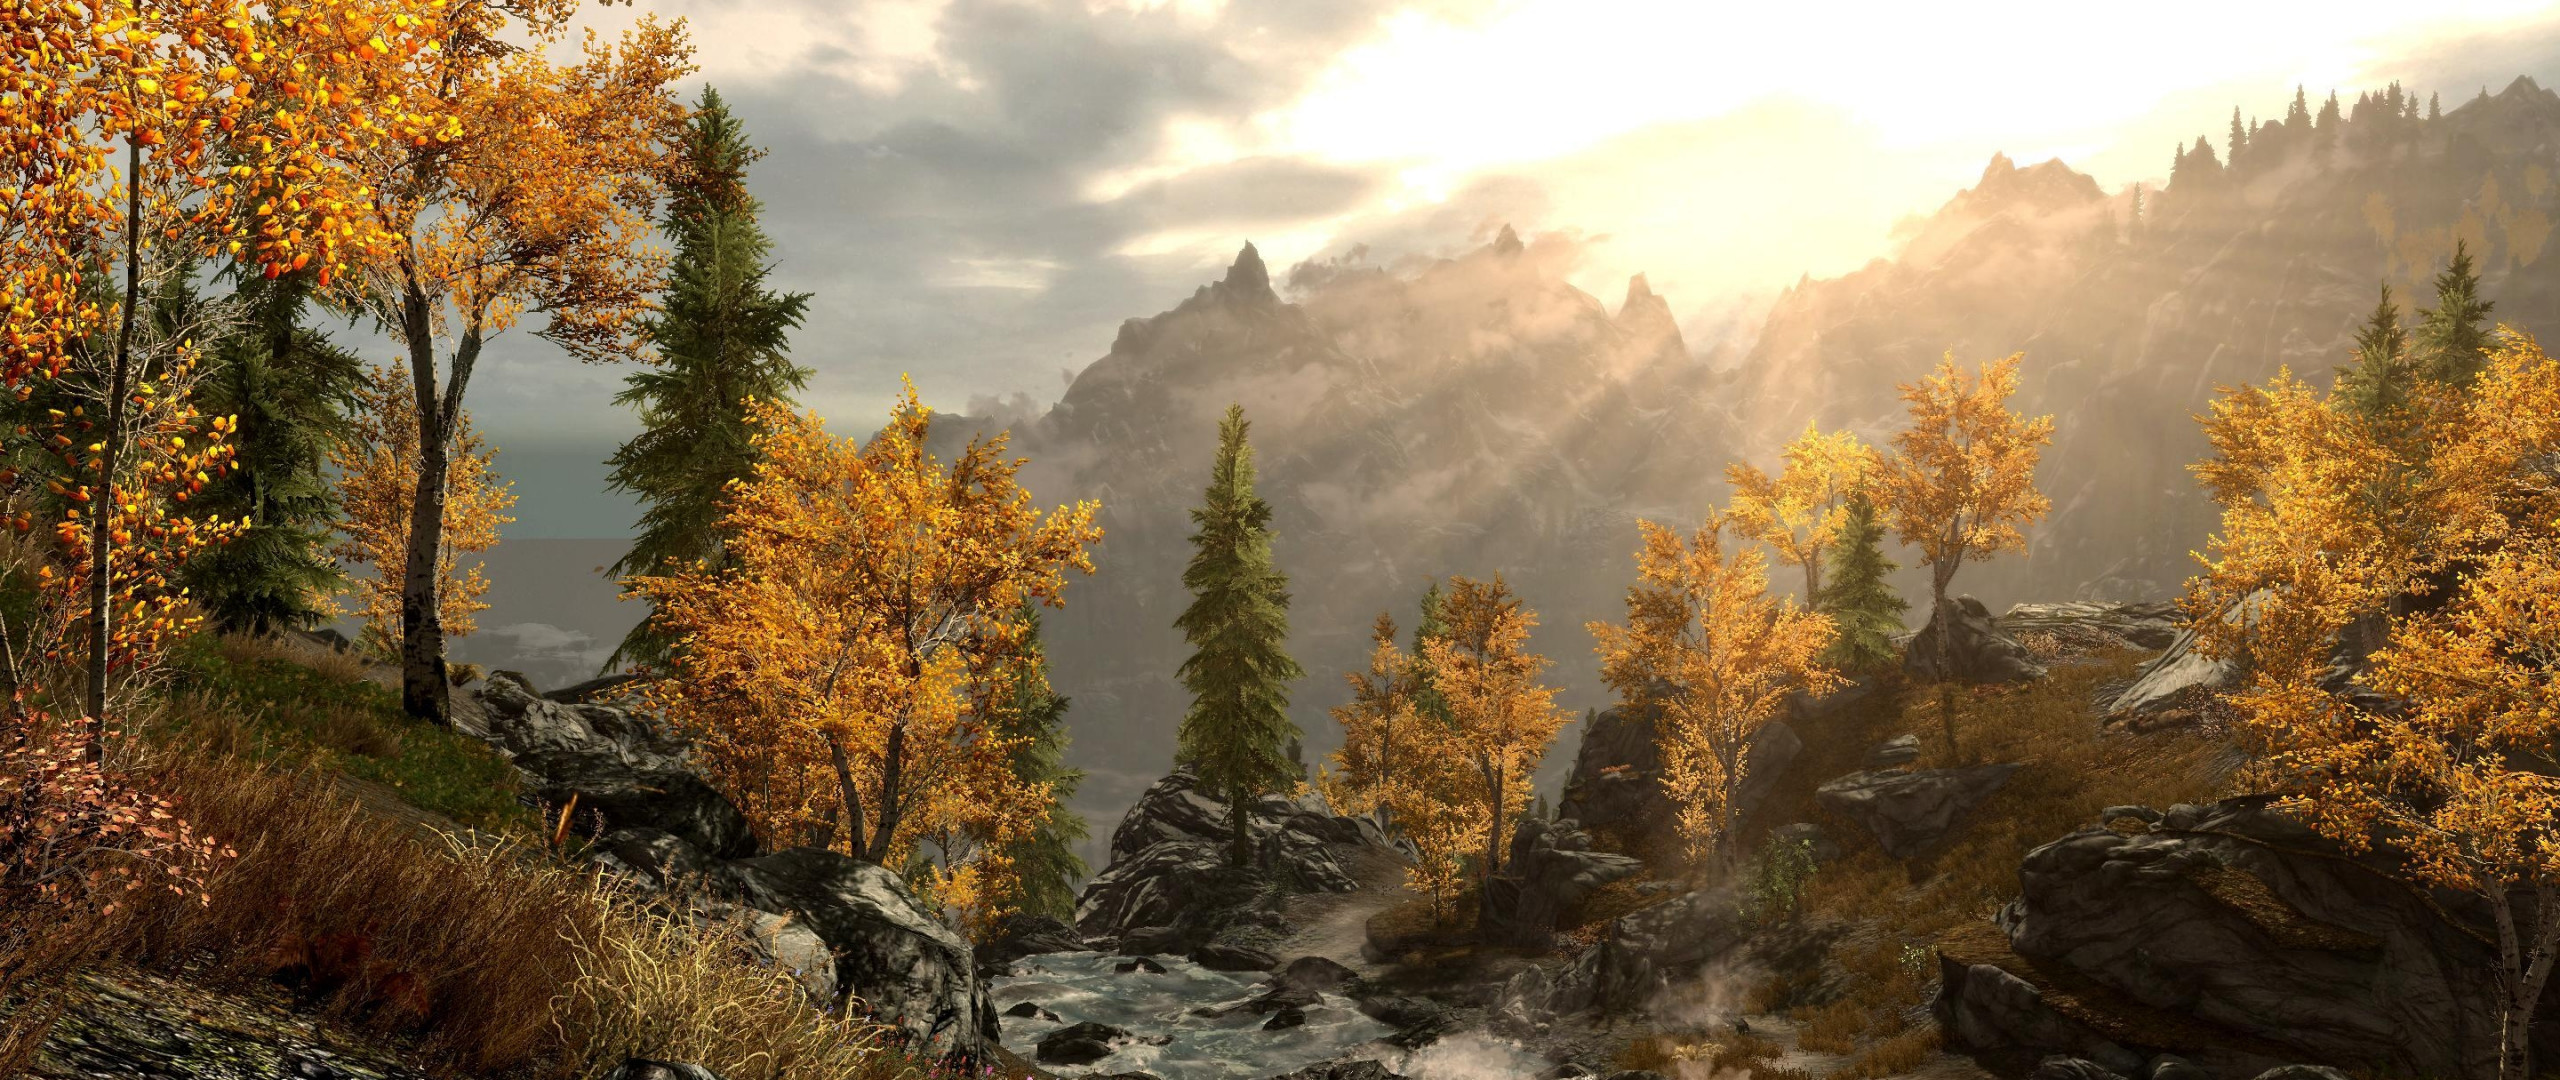 how to download skyrim for free on windows 10